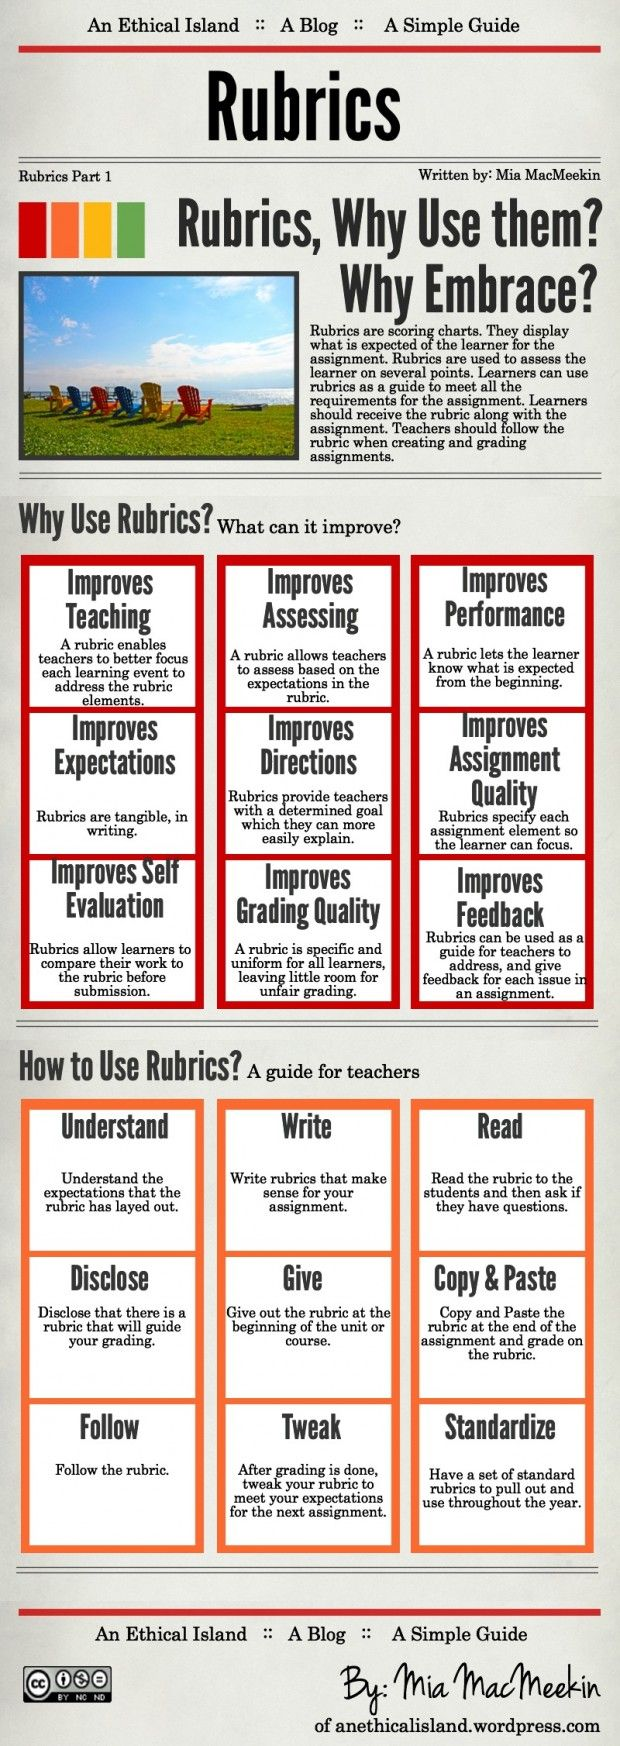 wonderful infographic that outlines some of the  reasons to use rubrics, what they improve and how to use them in your class.